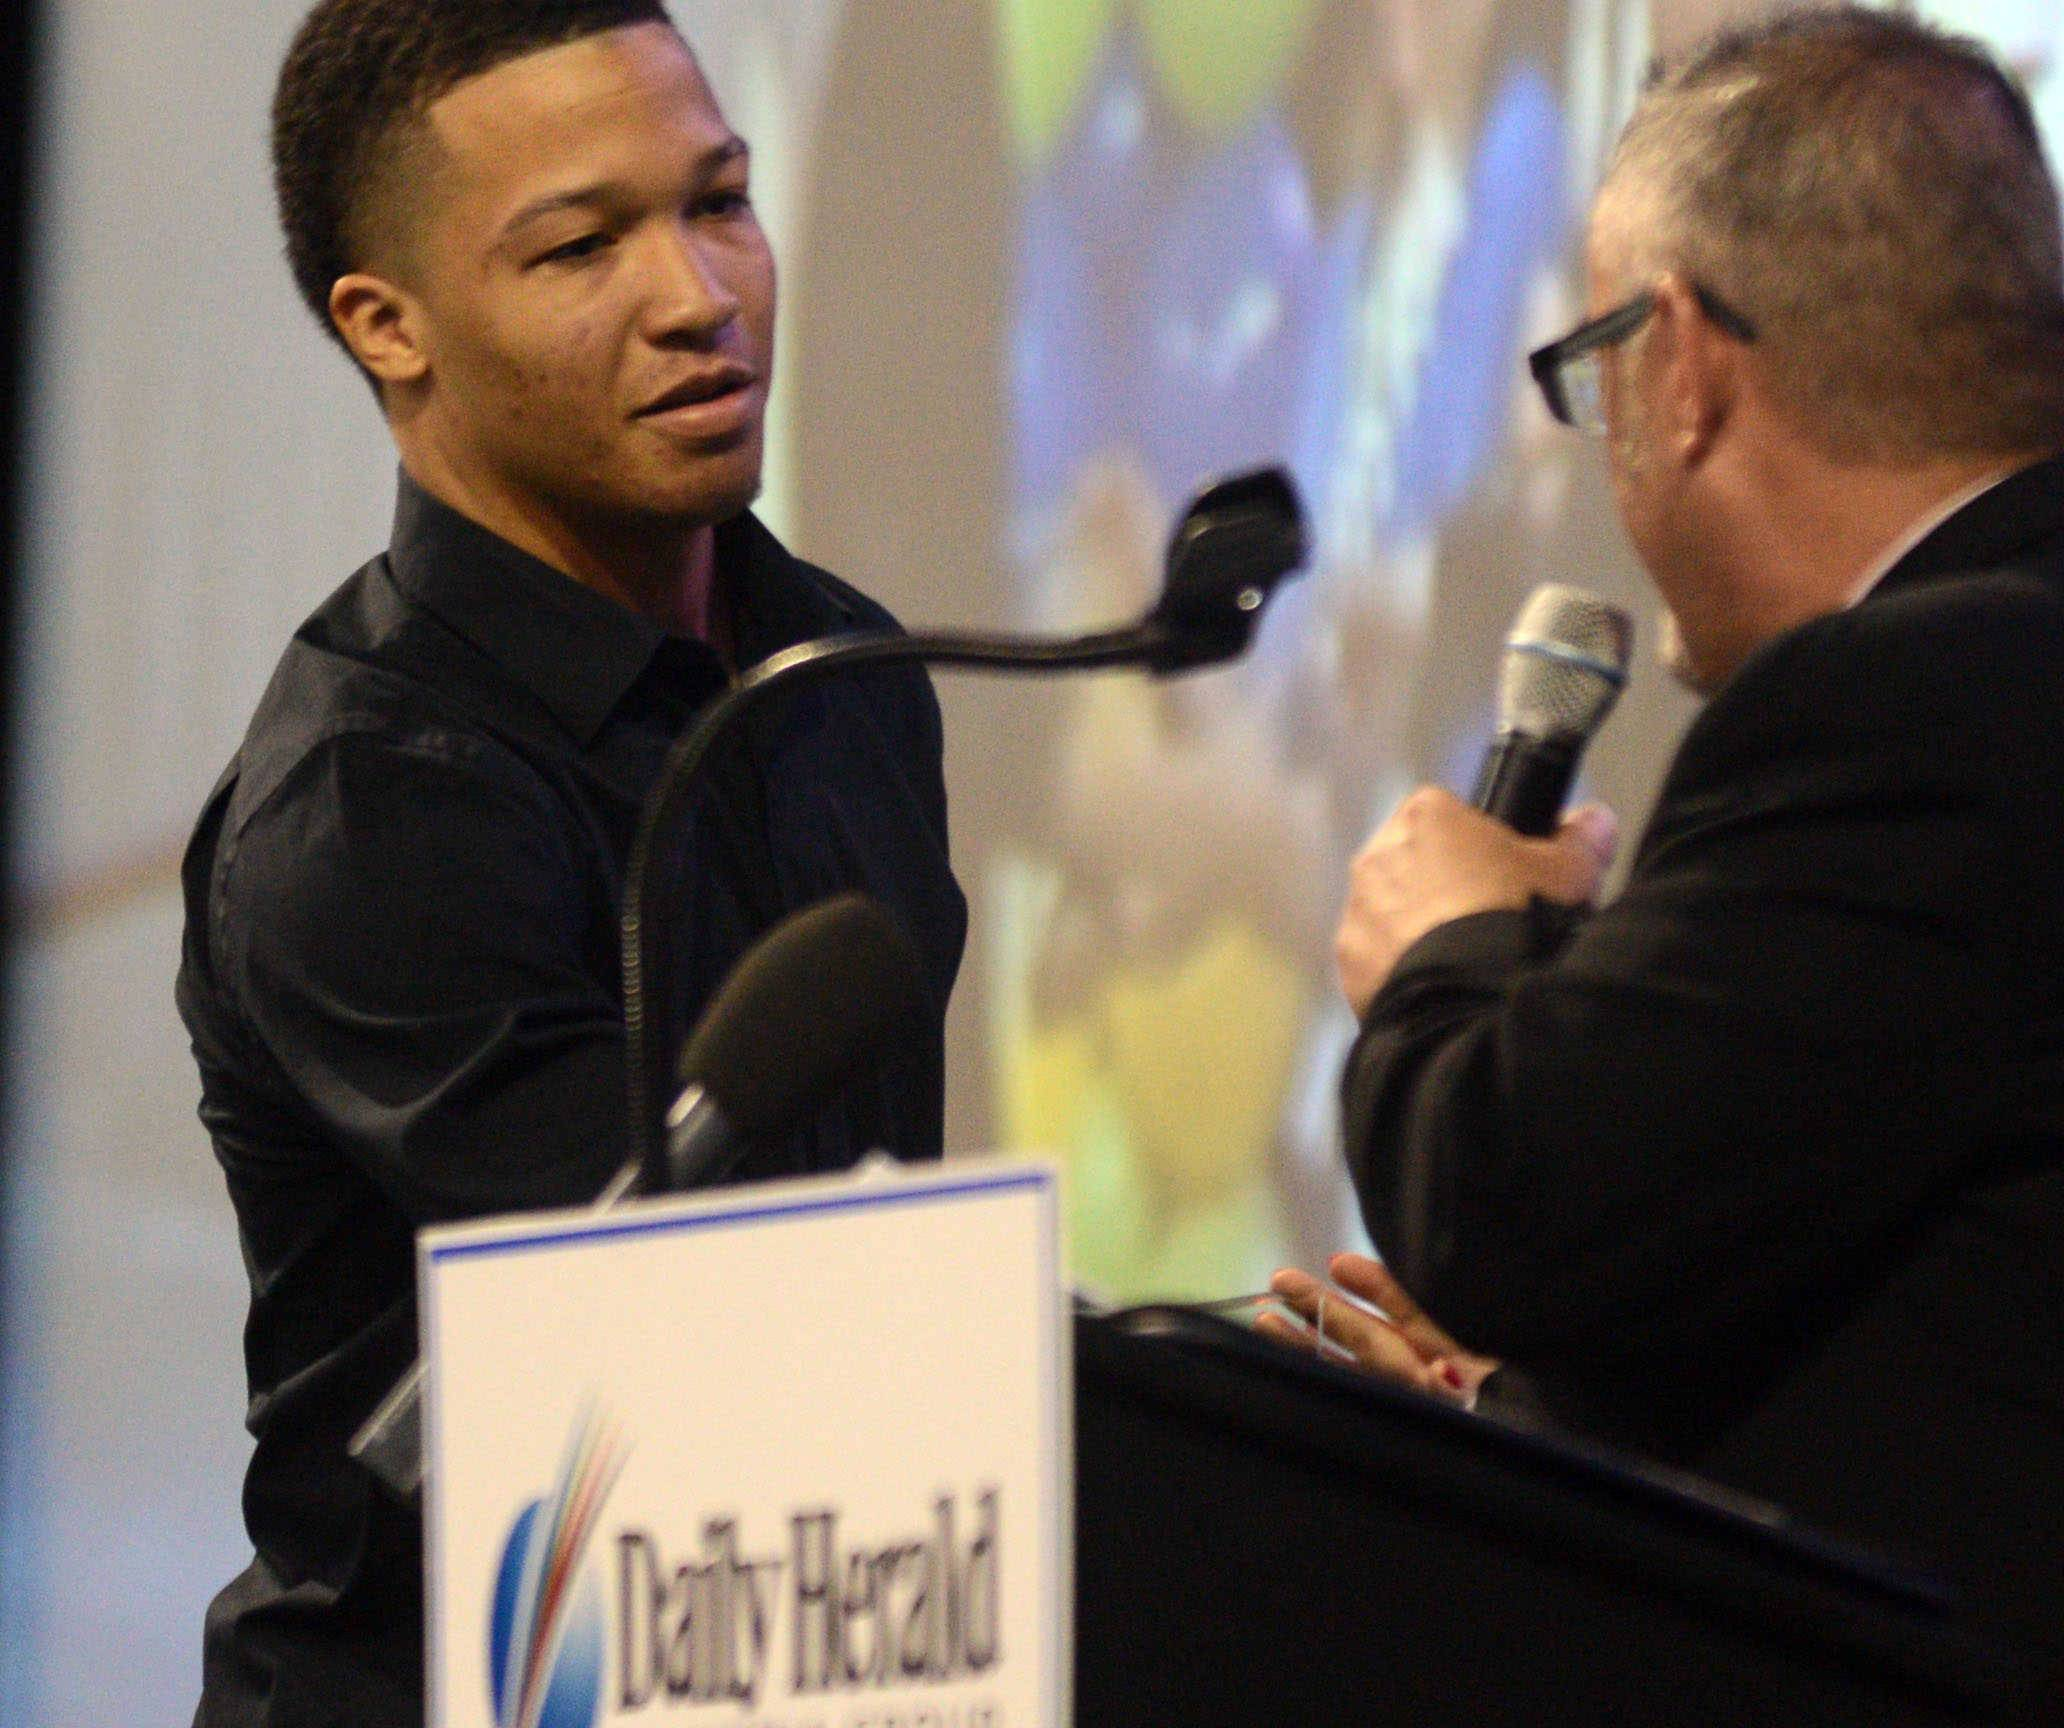 Stevenson basketball player Jalen Brunson receives a Dazzling Moment Award during the Daily Herald Prep Sports Excellence event at the Sears Centre in Hoffman Estates on Sunday afternoon. Brunson scored 56 points in a state semifinal game.